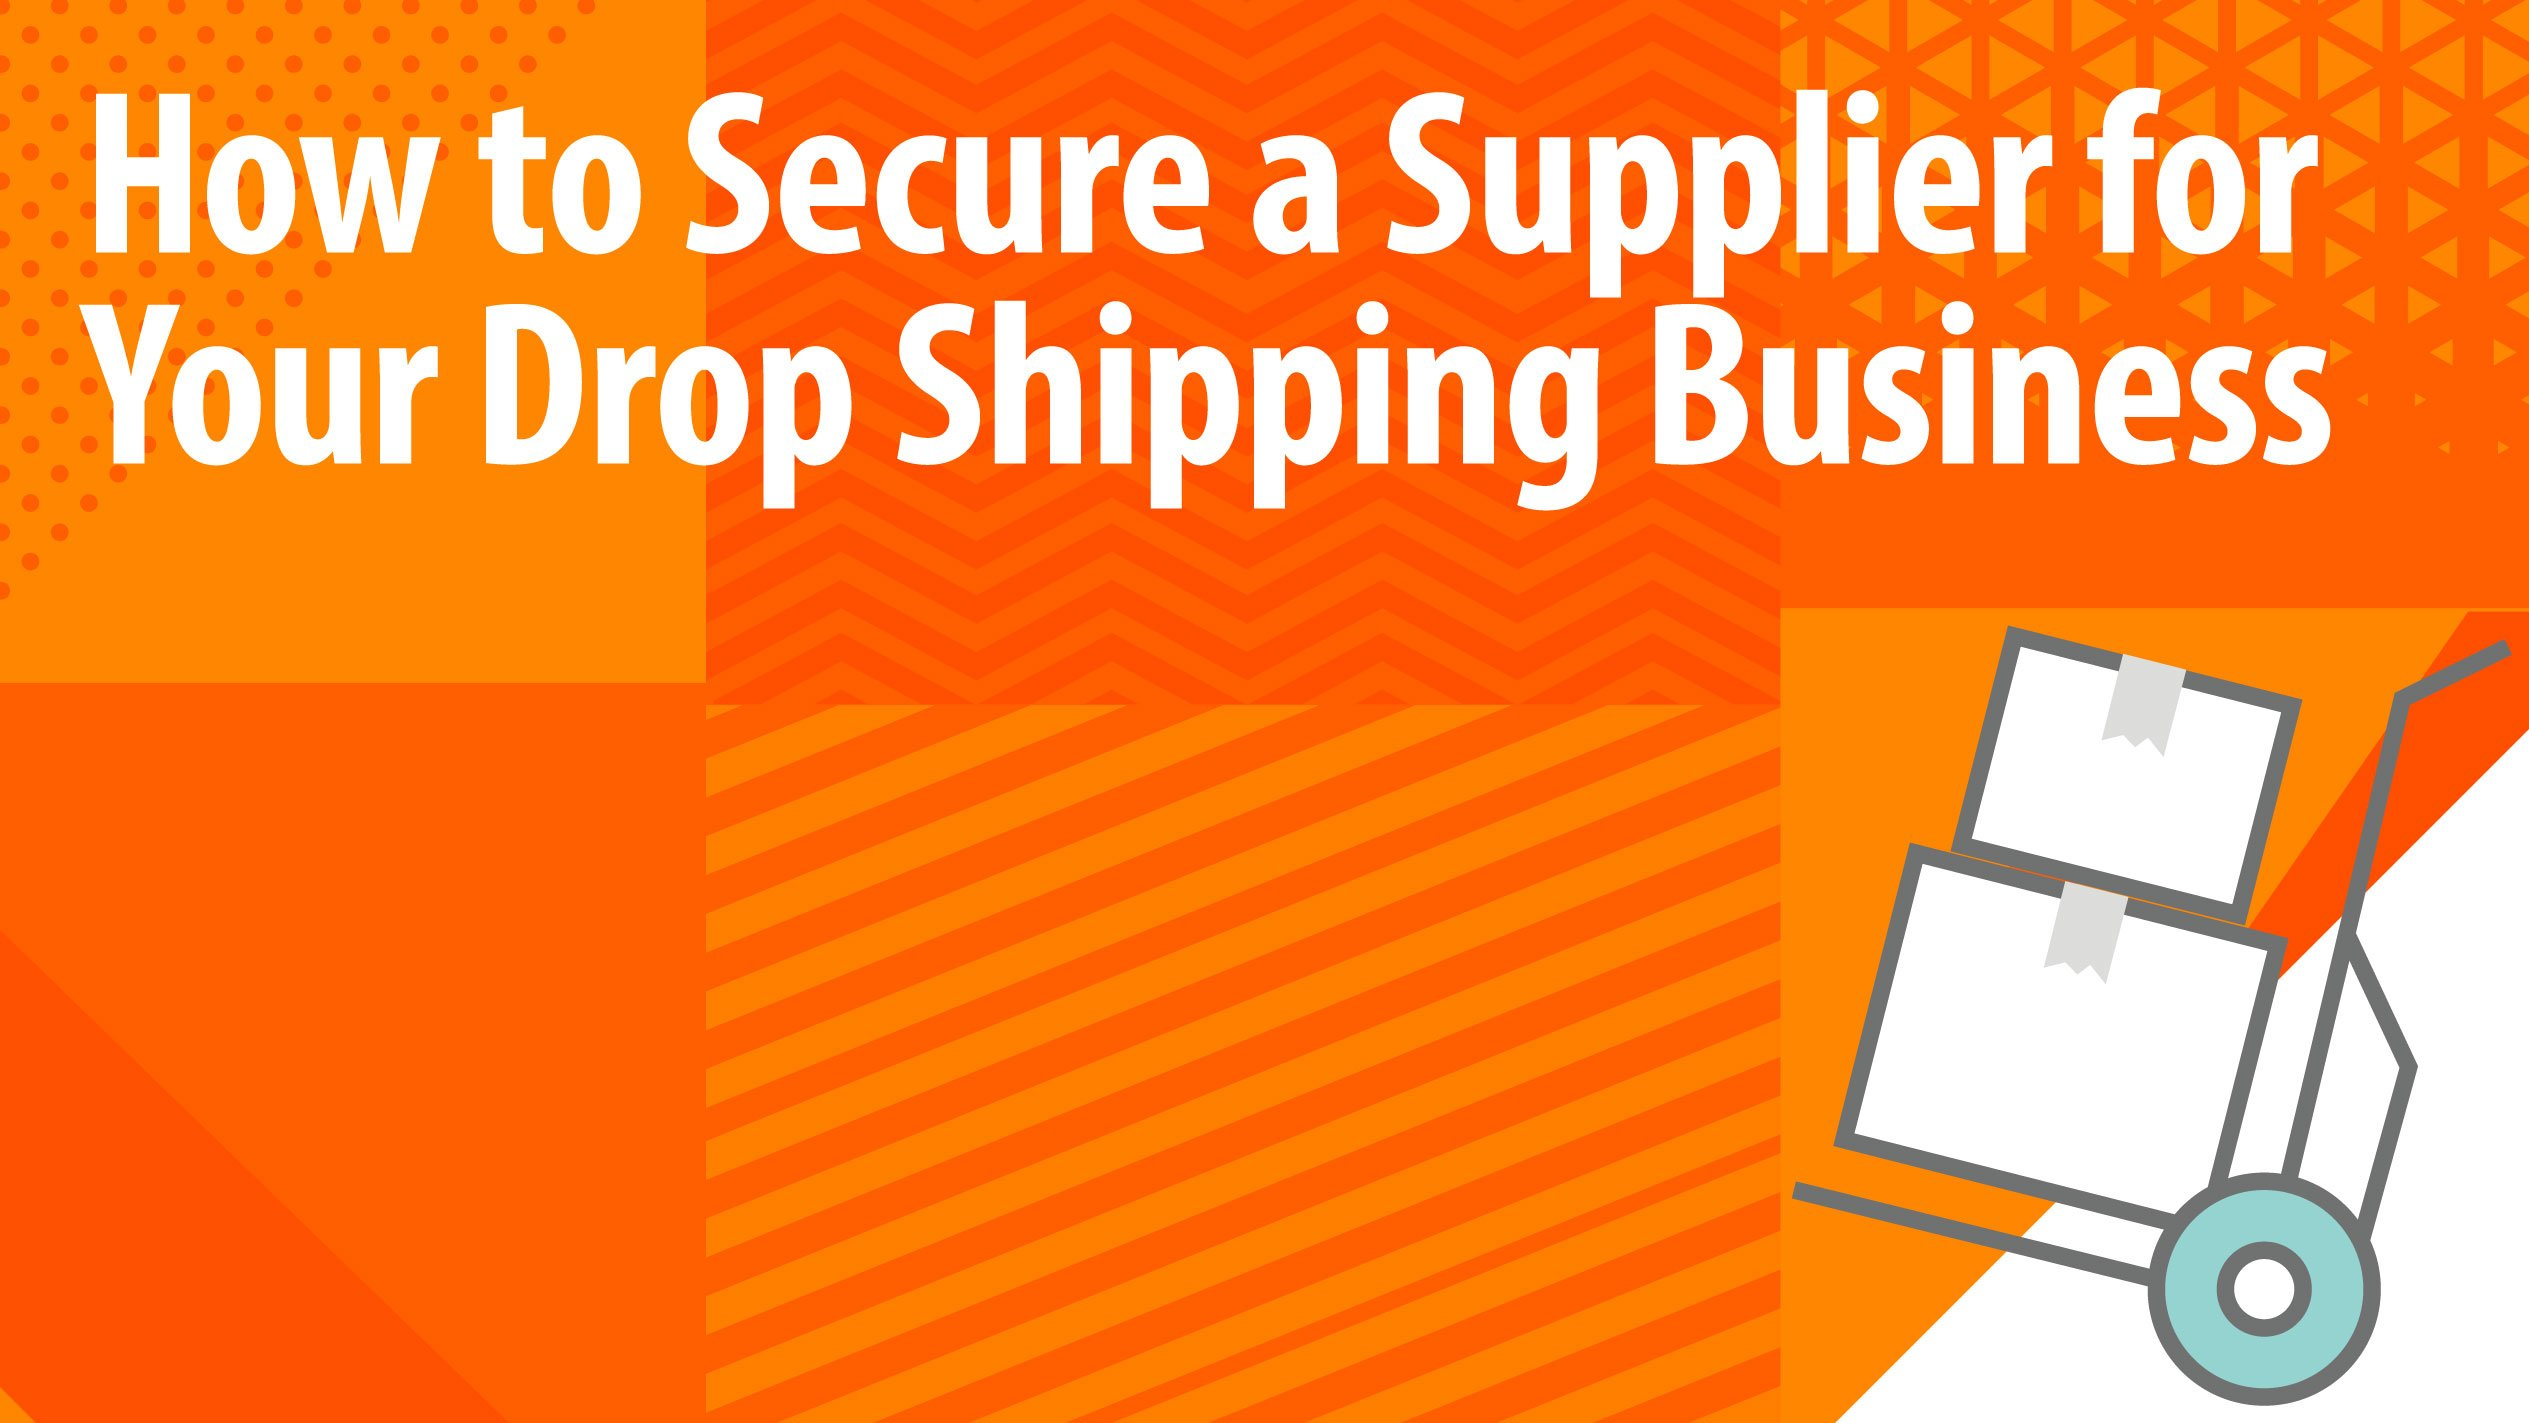 How to Secure a Supplier for Your Drop Shipping Business